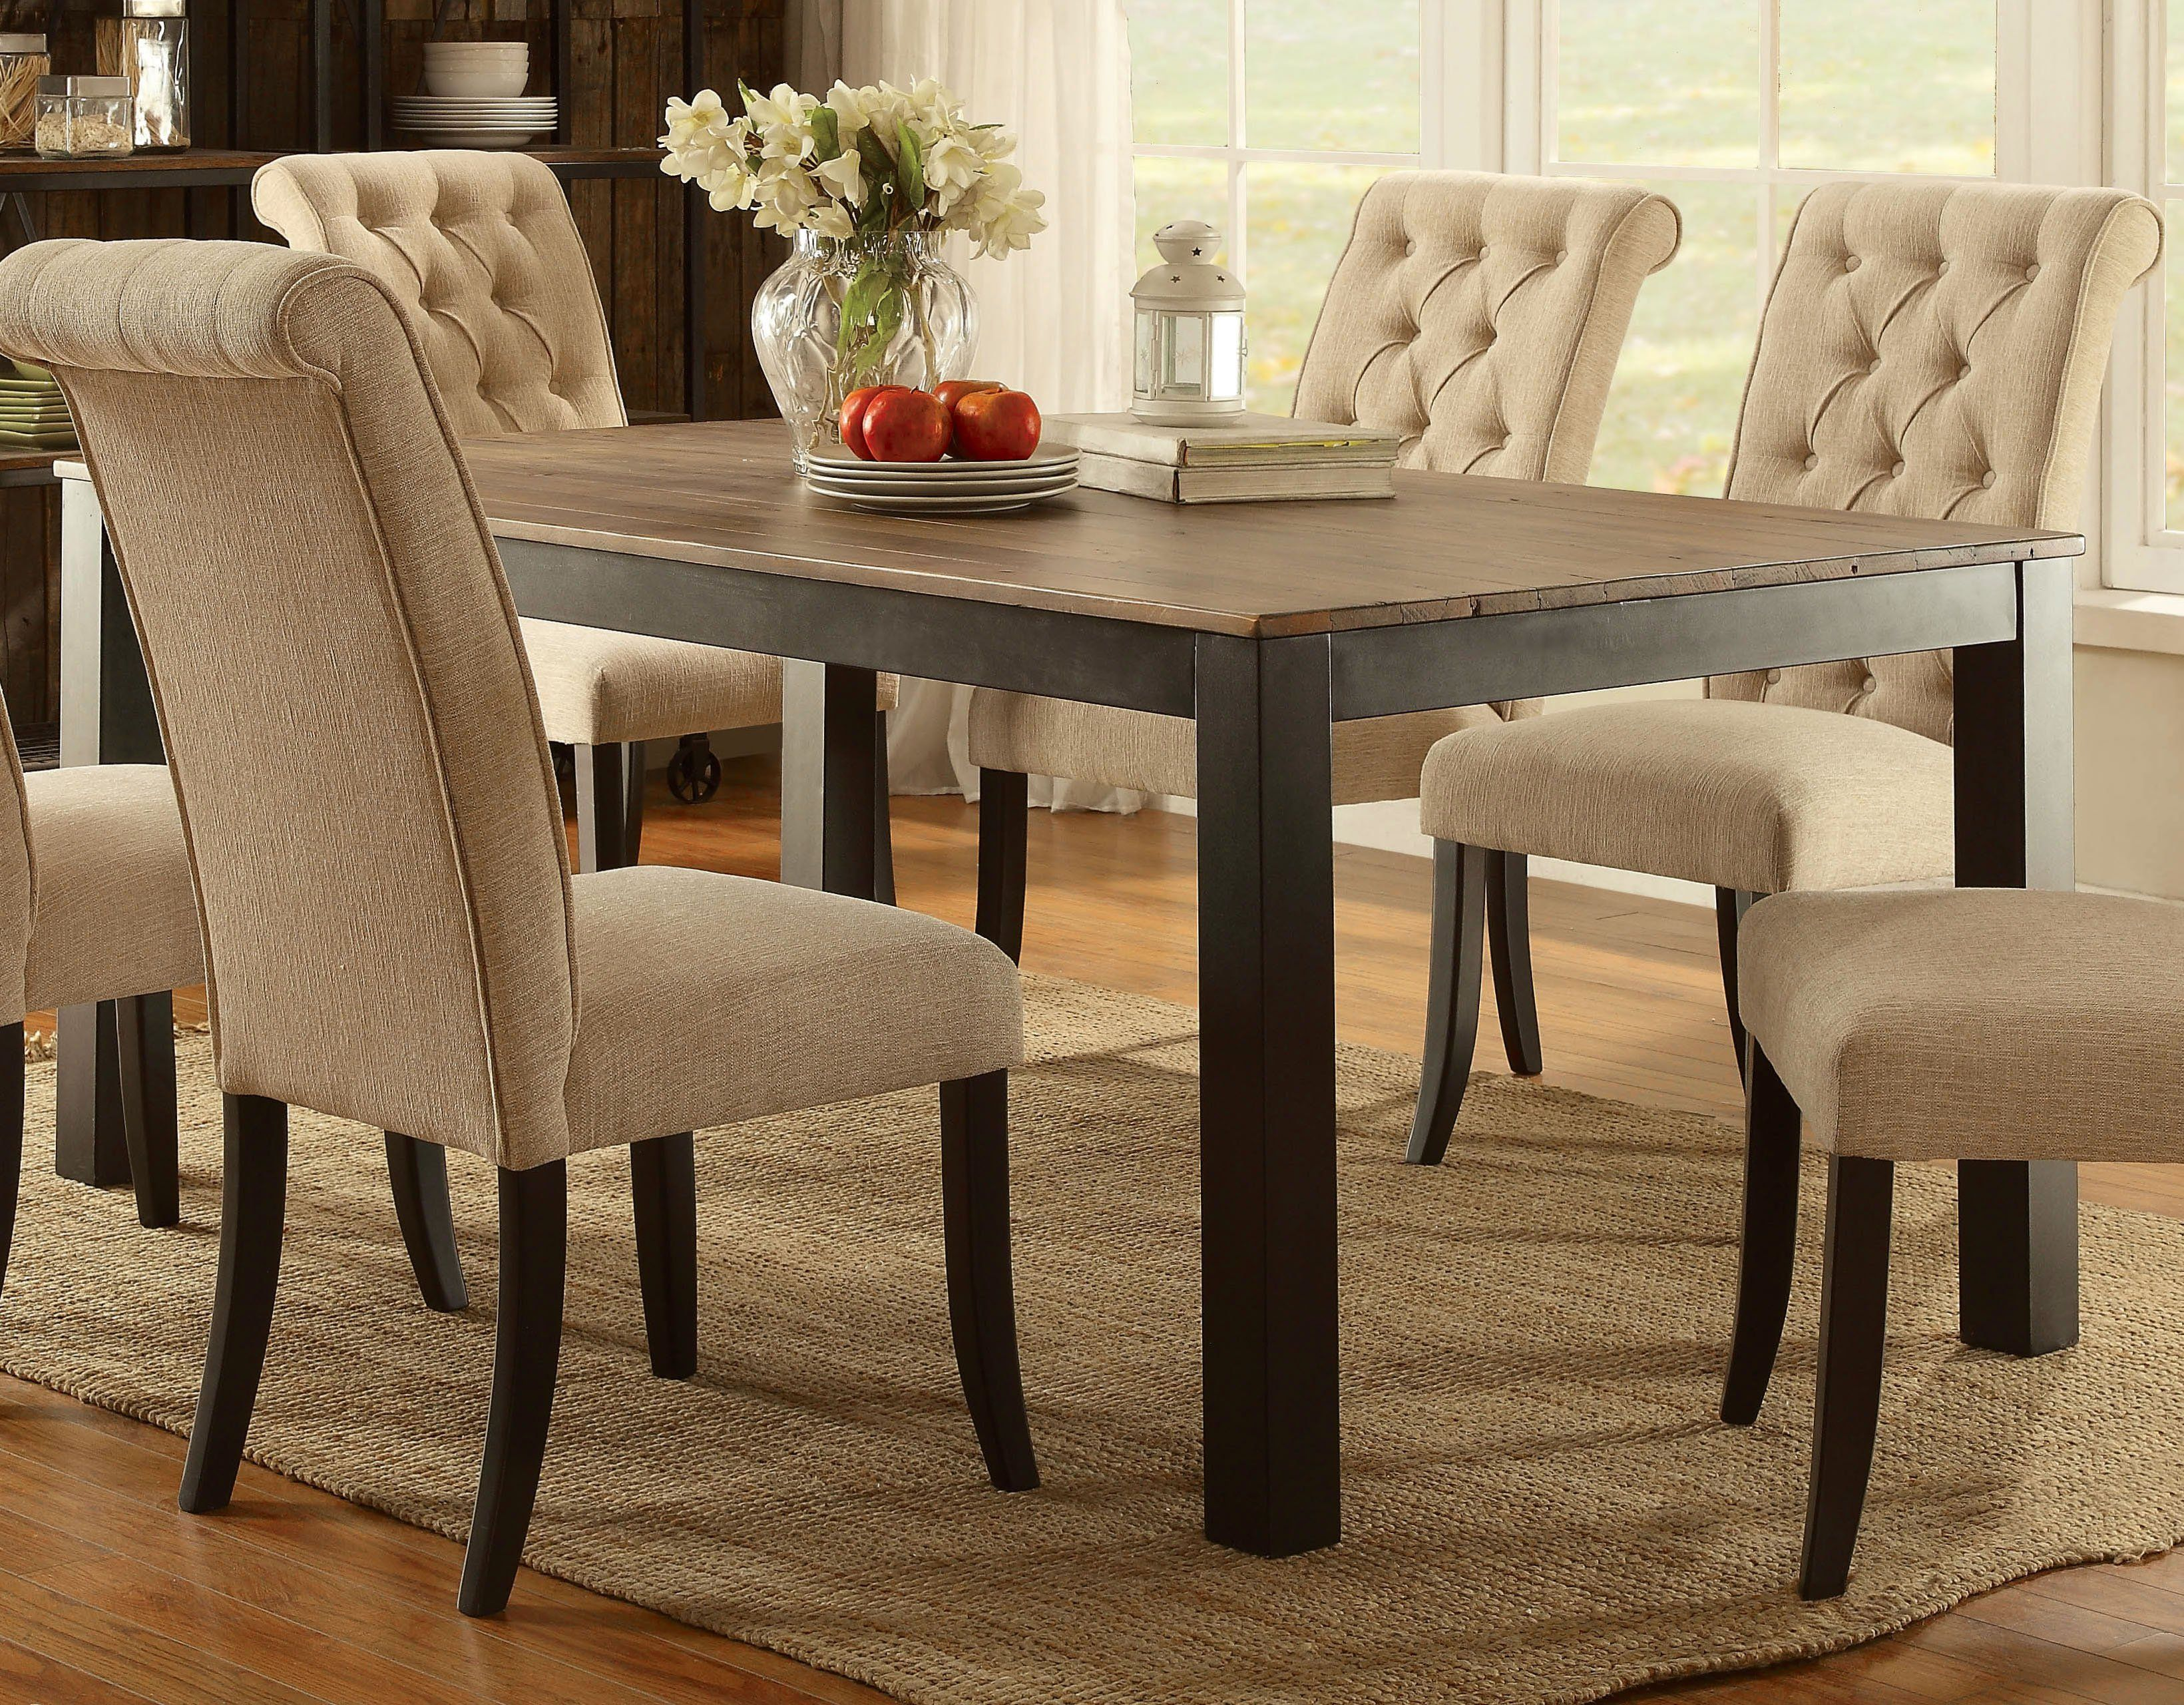 Meyer Transitional Dining Table Transitional Dining Tables Dining Table Table